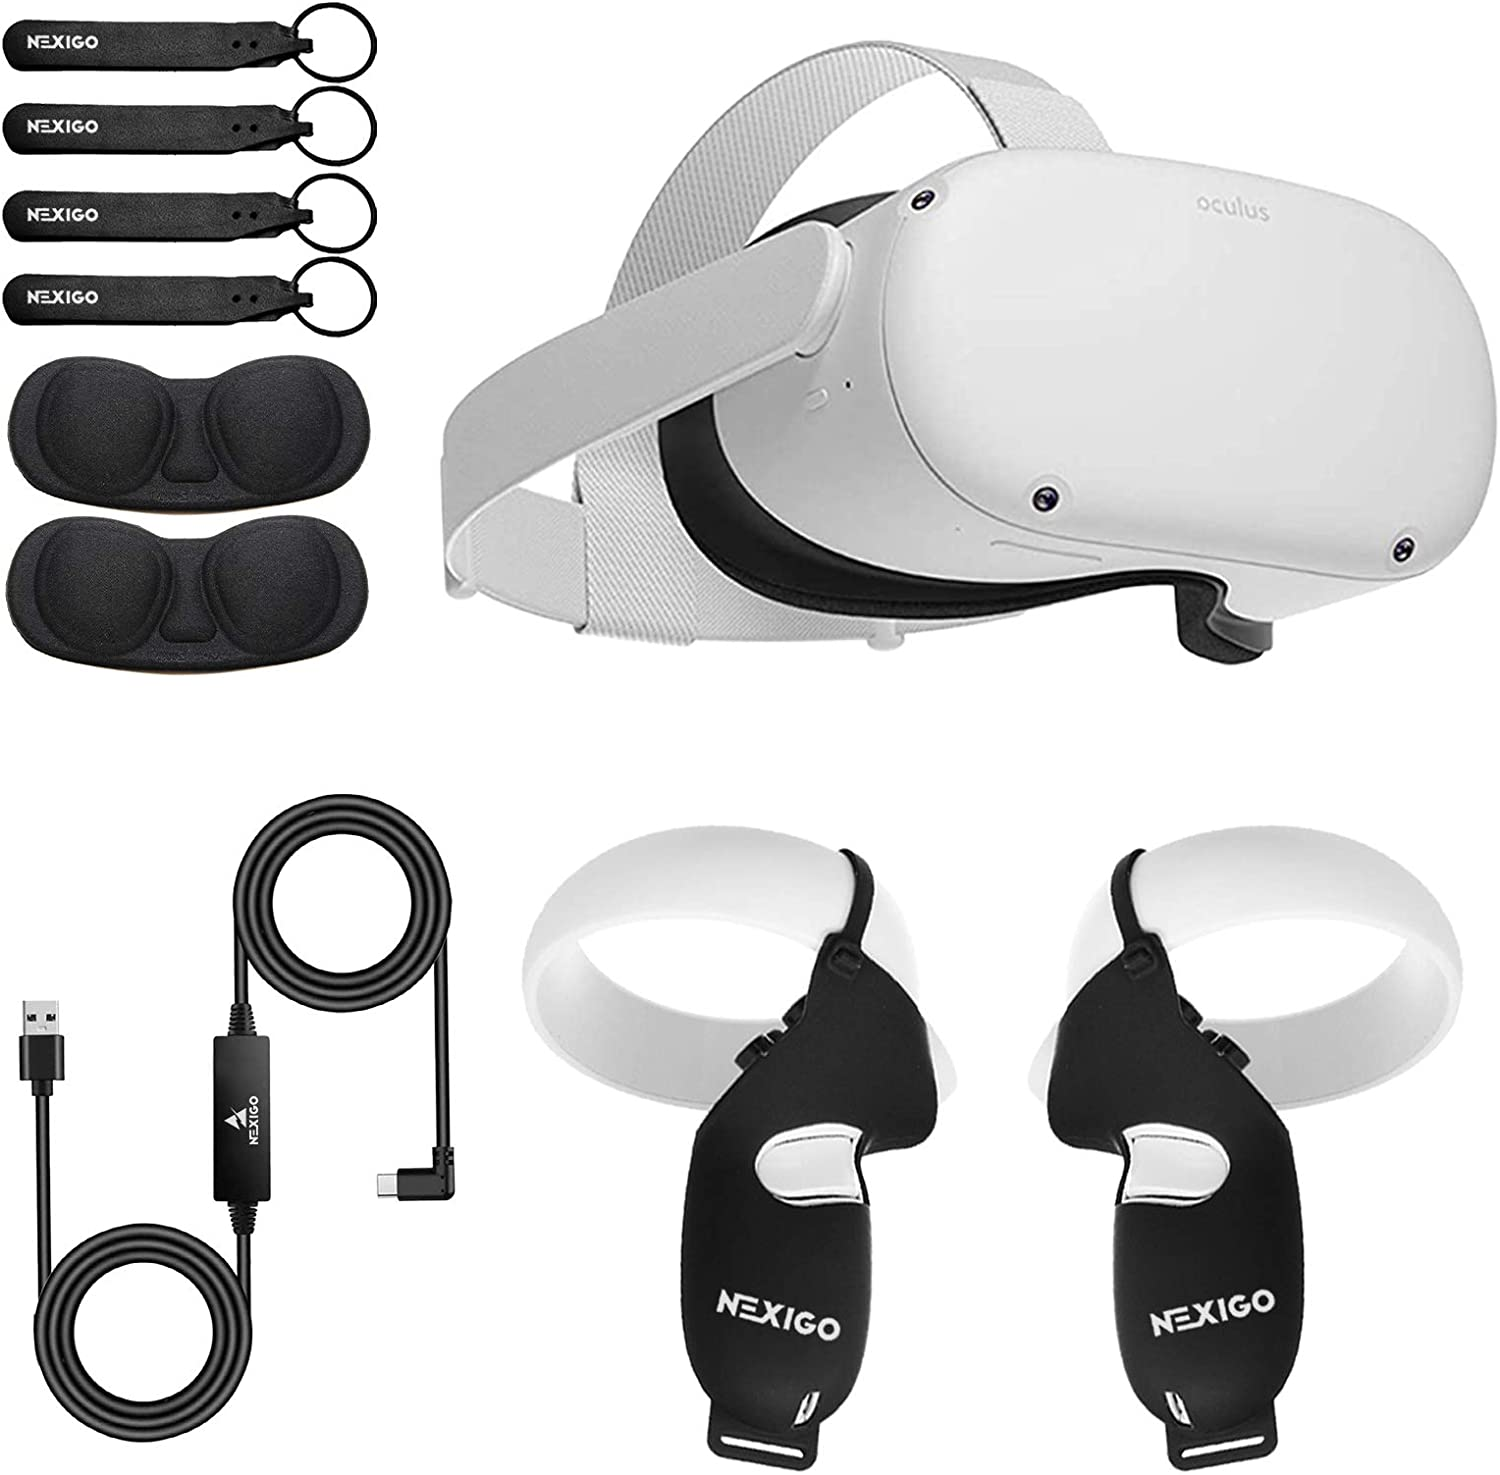 Oculus 2021 Quest 2 VR 256GB Holiday Bundle, Advanced All-in-One Virtual Reality Gaming Headset, NexiGo Controller Grip Cover Black + Knuckle Strap Black + Lens Cover + 16FT Link Cable Bundle